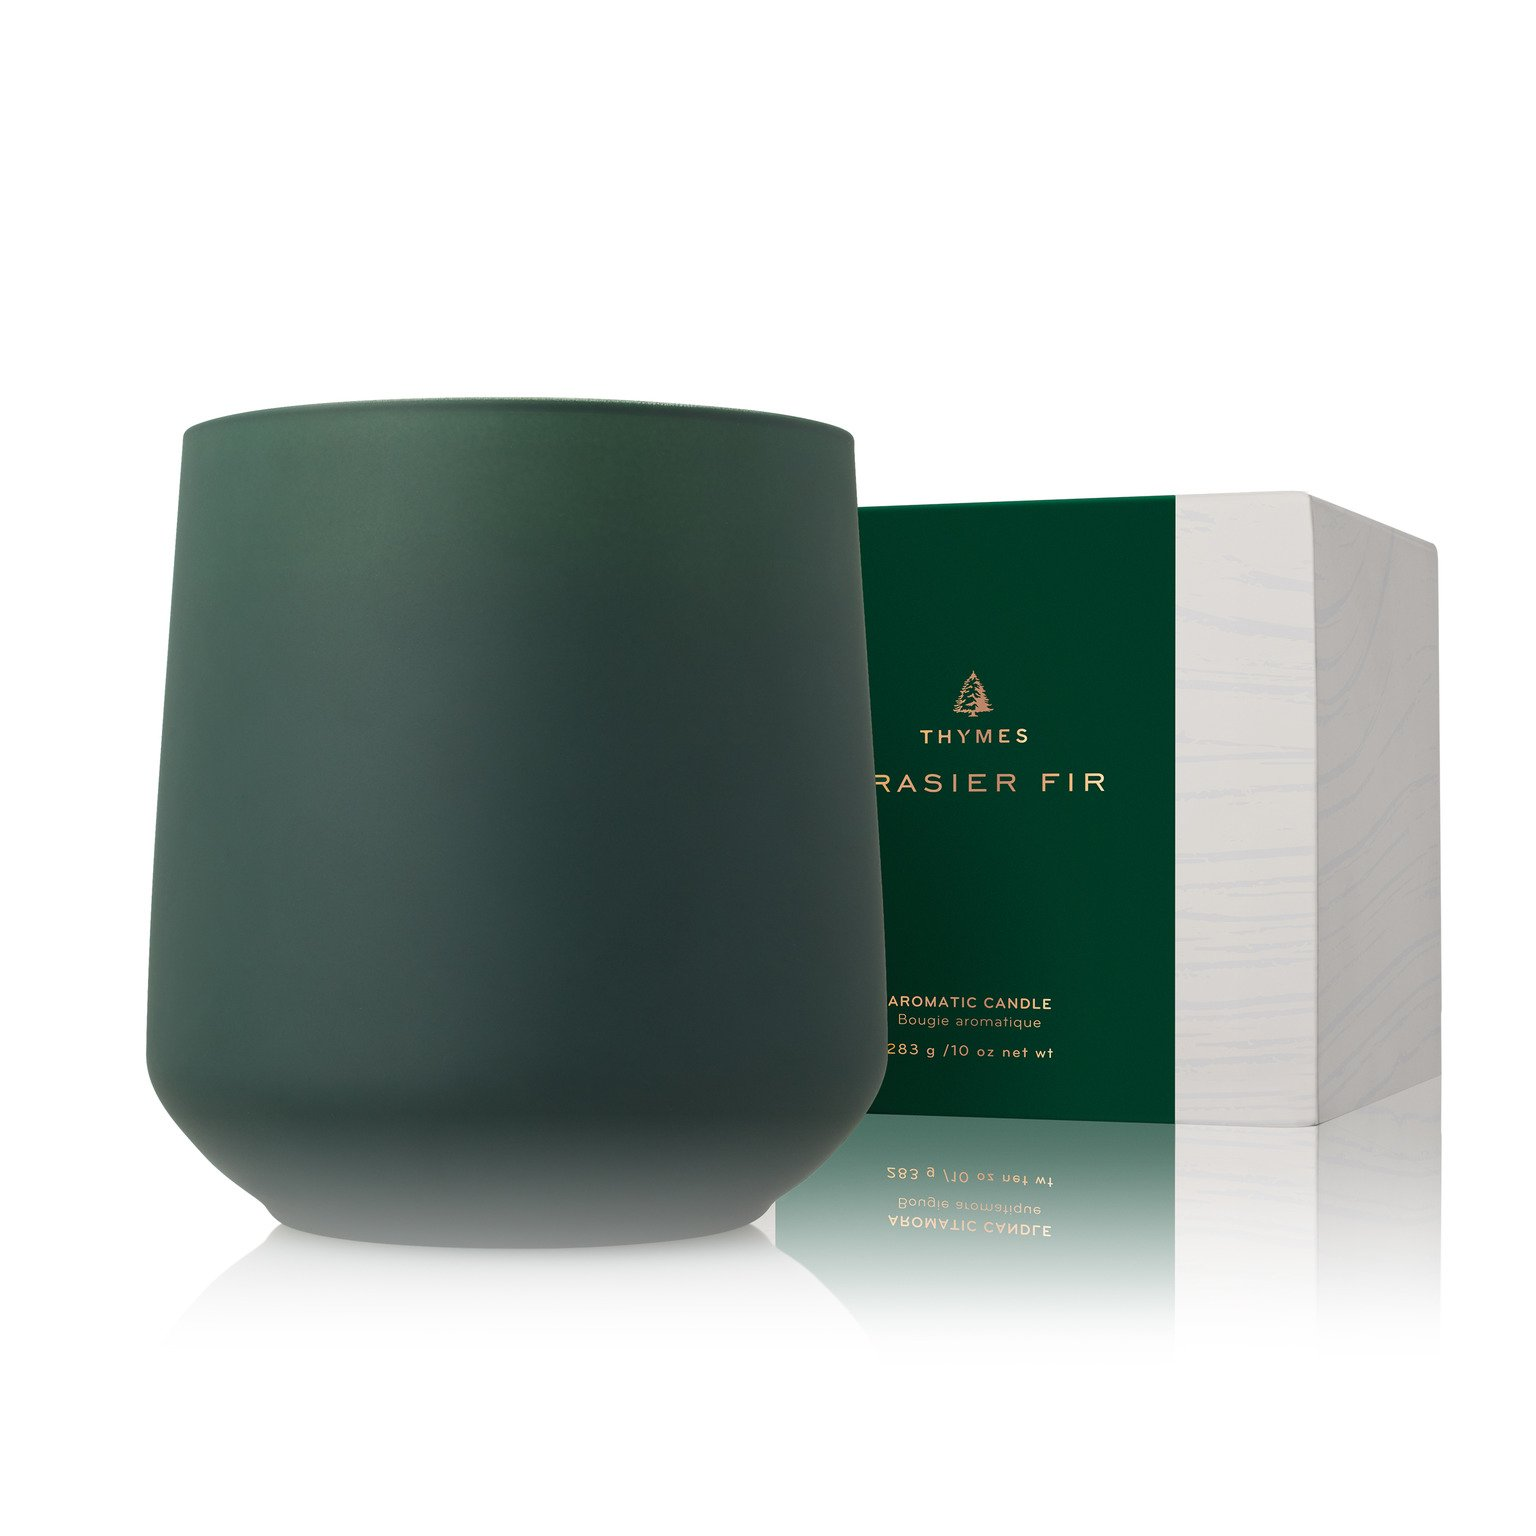 Thymes - Frasier Fir Large Joyeux Candle with Matte Pine Green Glass - 15 Ounces